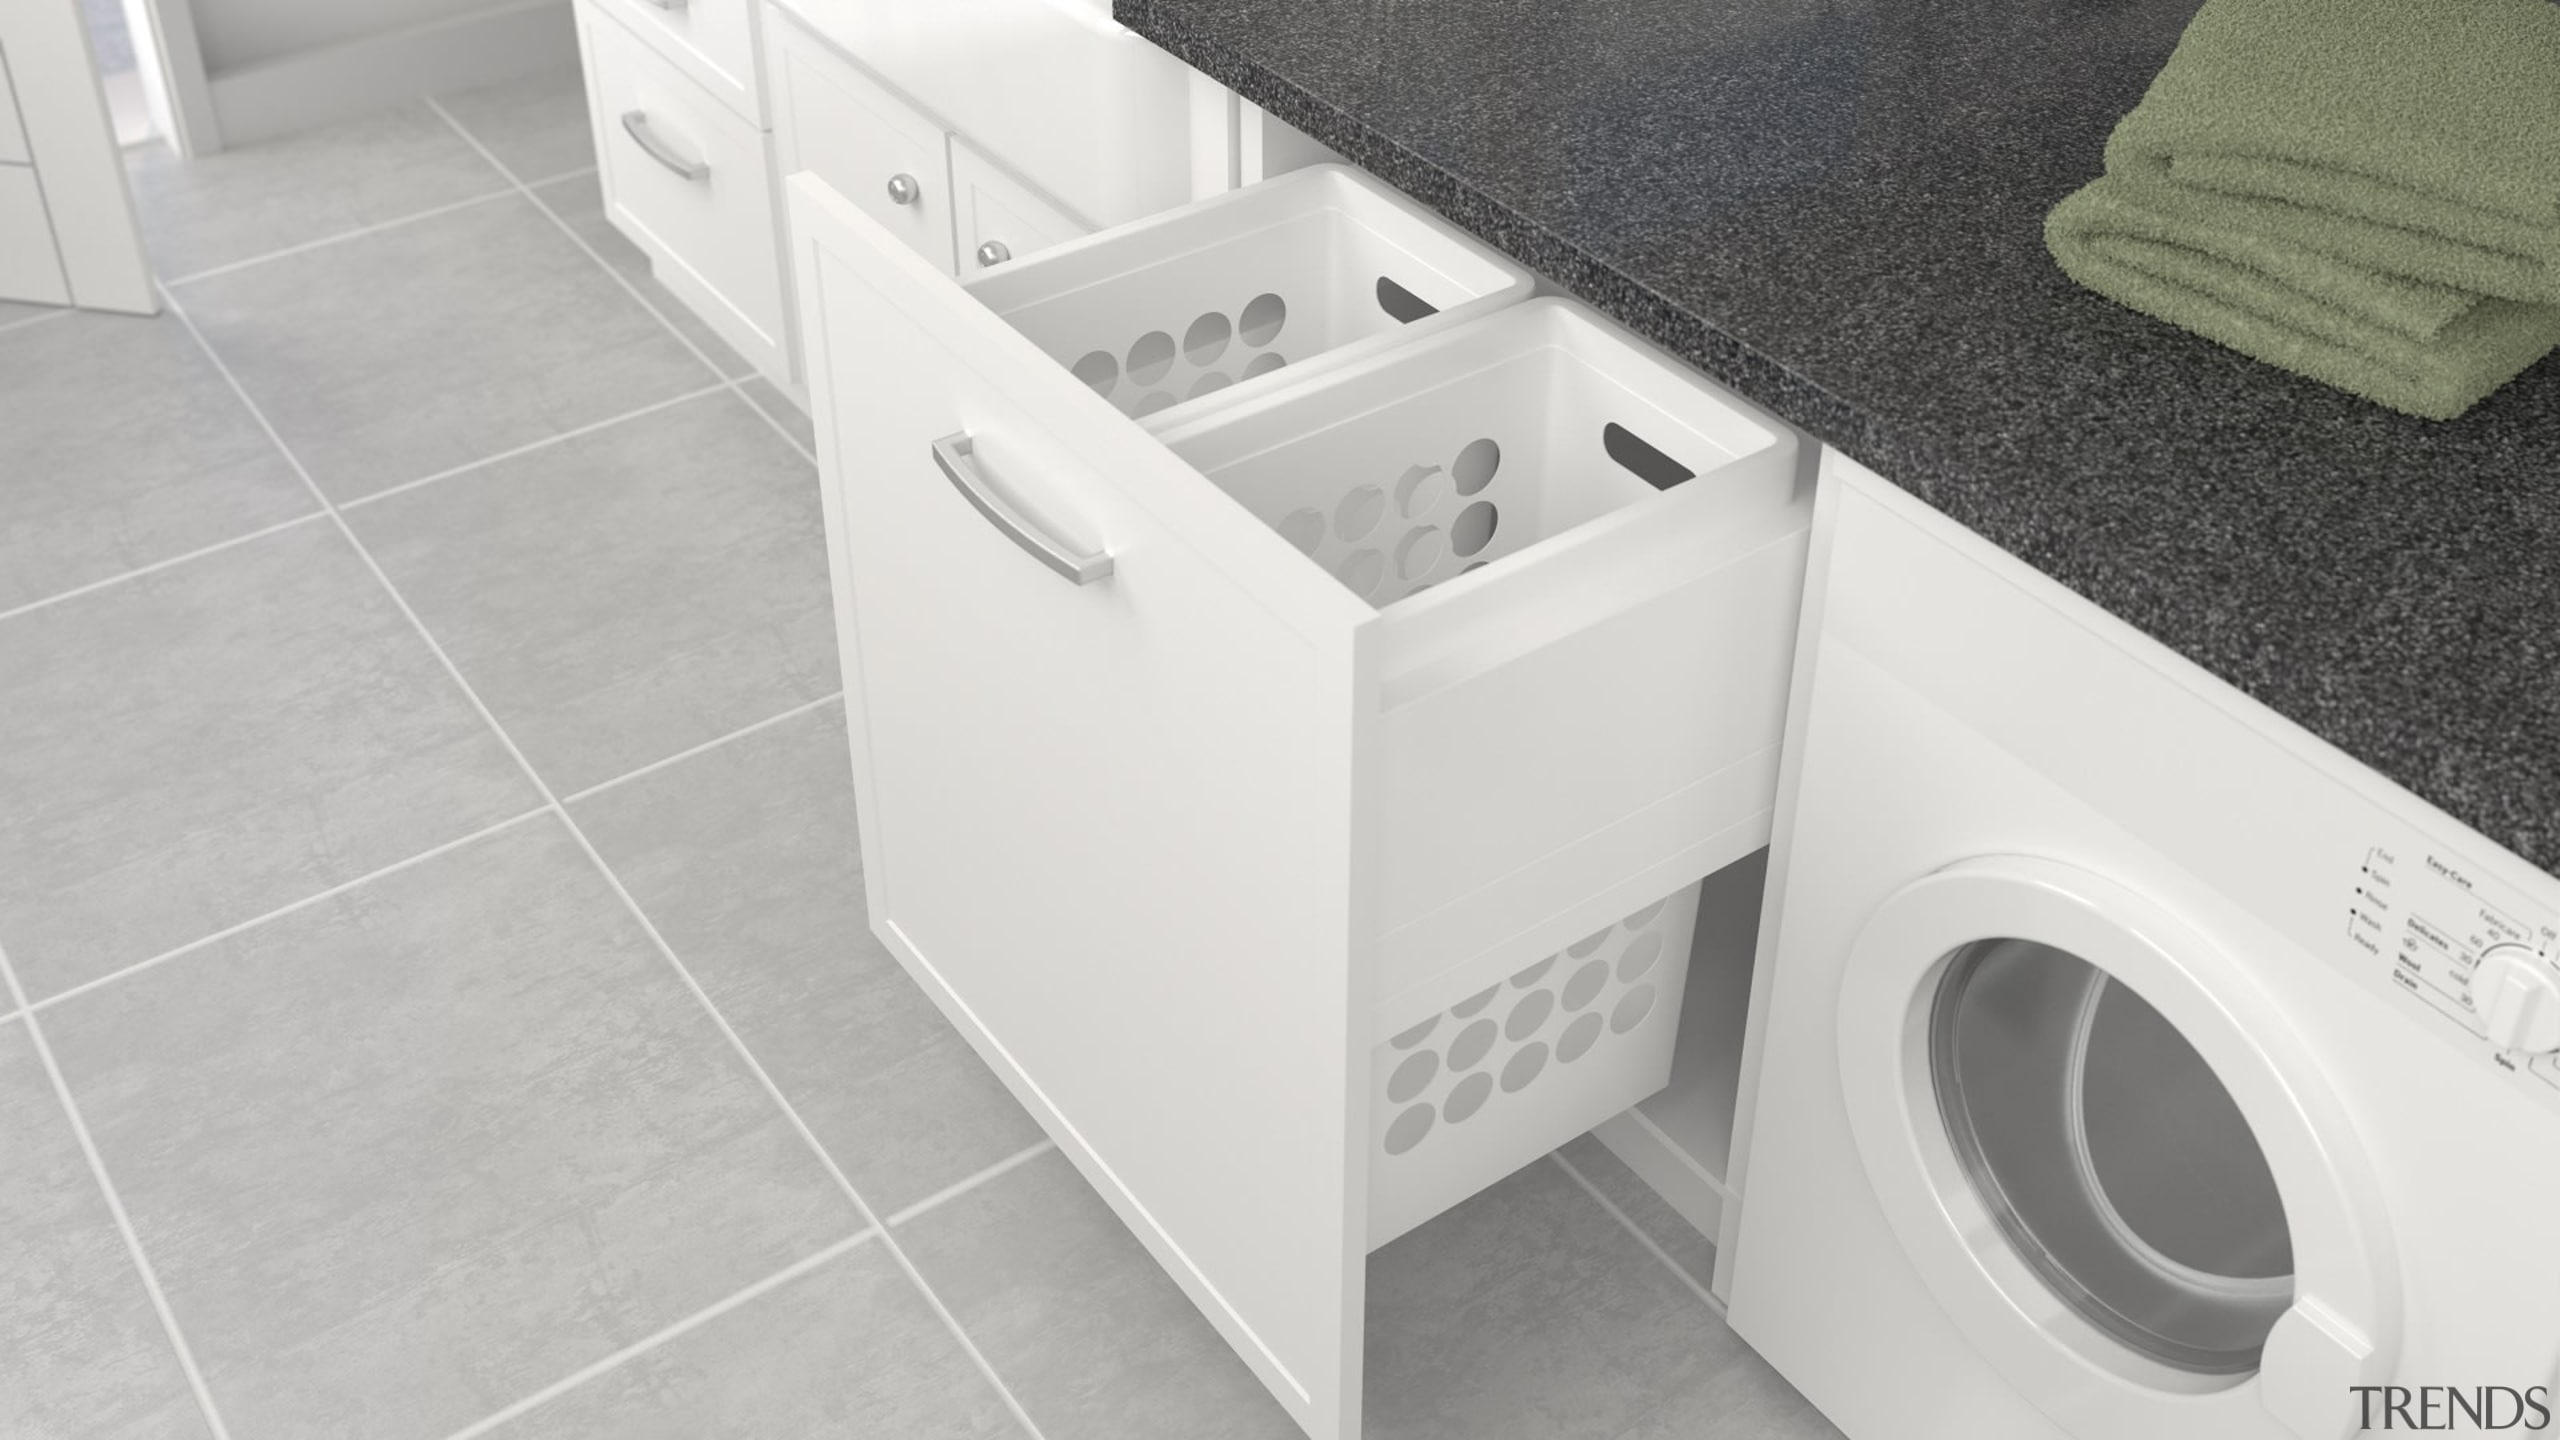 Deluxe pull out laundry units with plastic baskets clothes dryer, floor, home appliance, laundry, major appliance, plumbing fixture, product, tile, toilet, toilet seat, washing machine, white